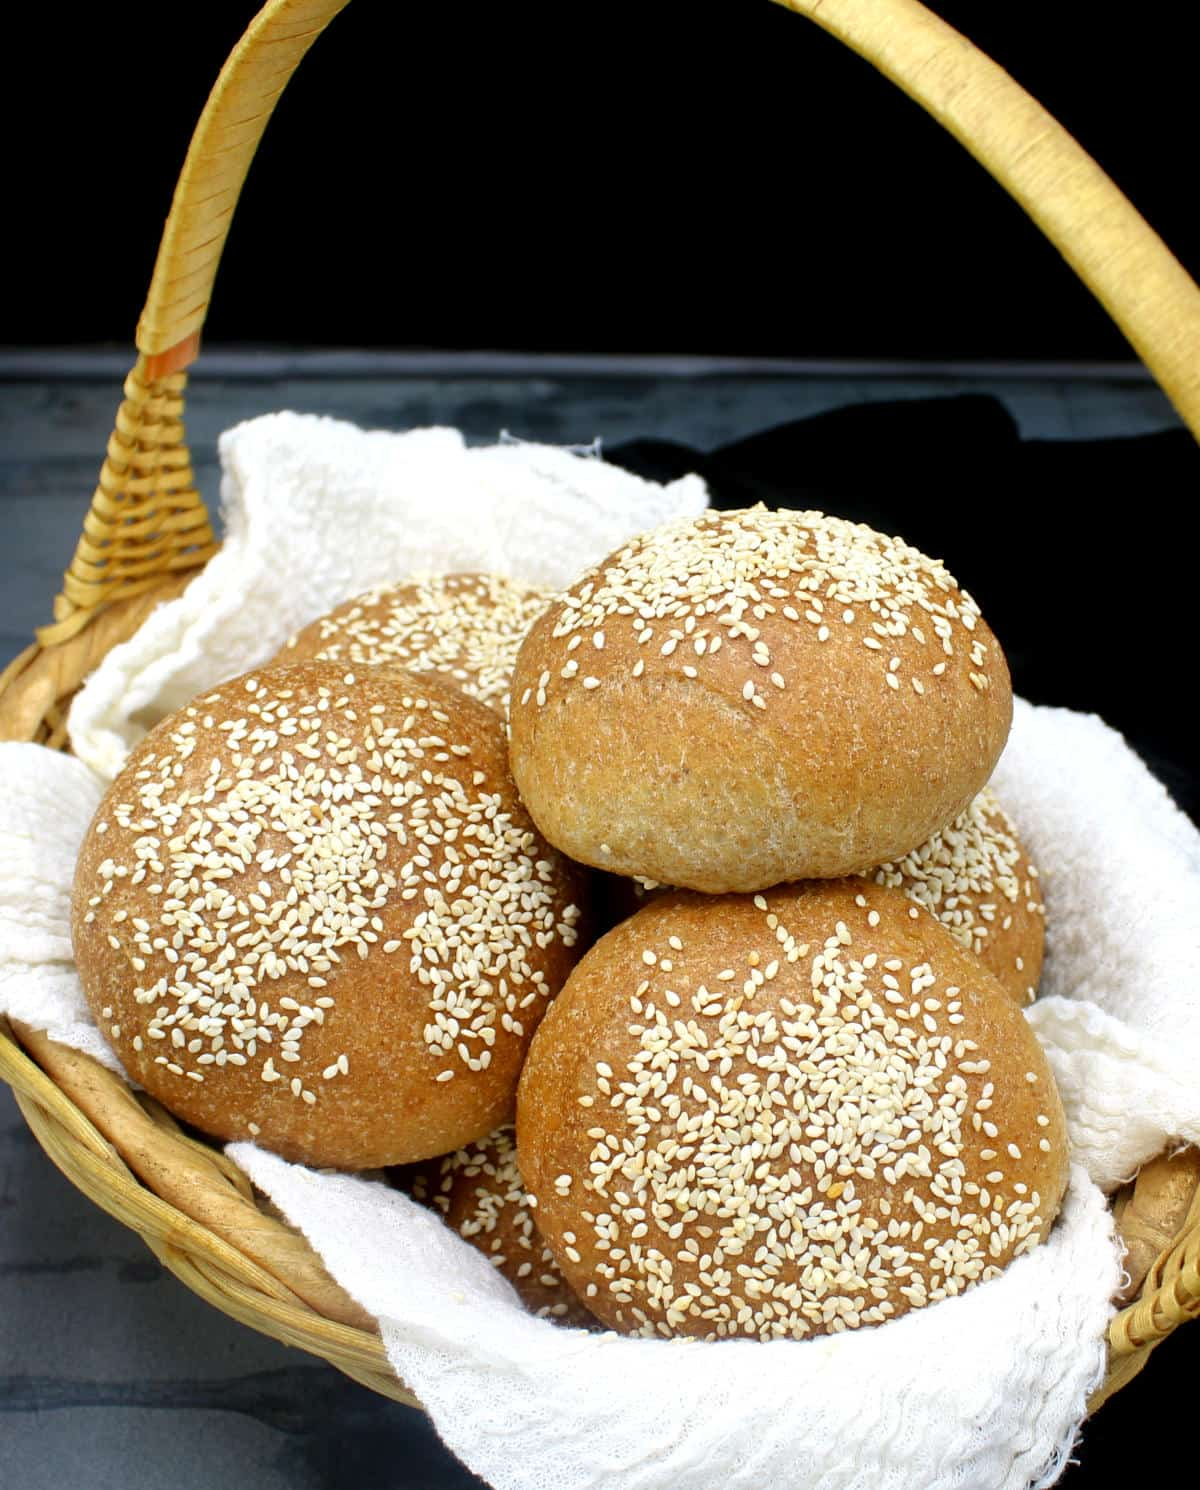 Photo of homemade vegan burger buns nestled in cheesecloth in a straw basket.